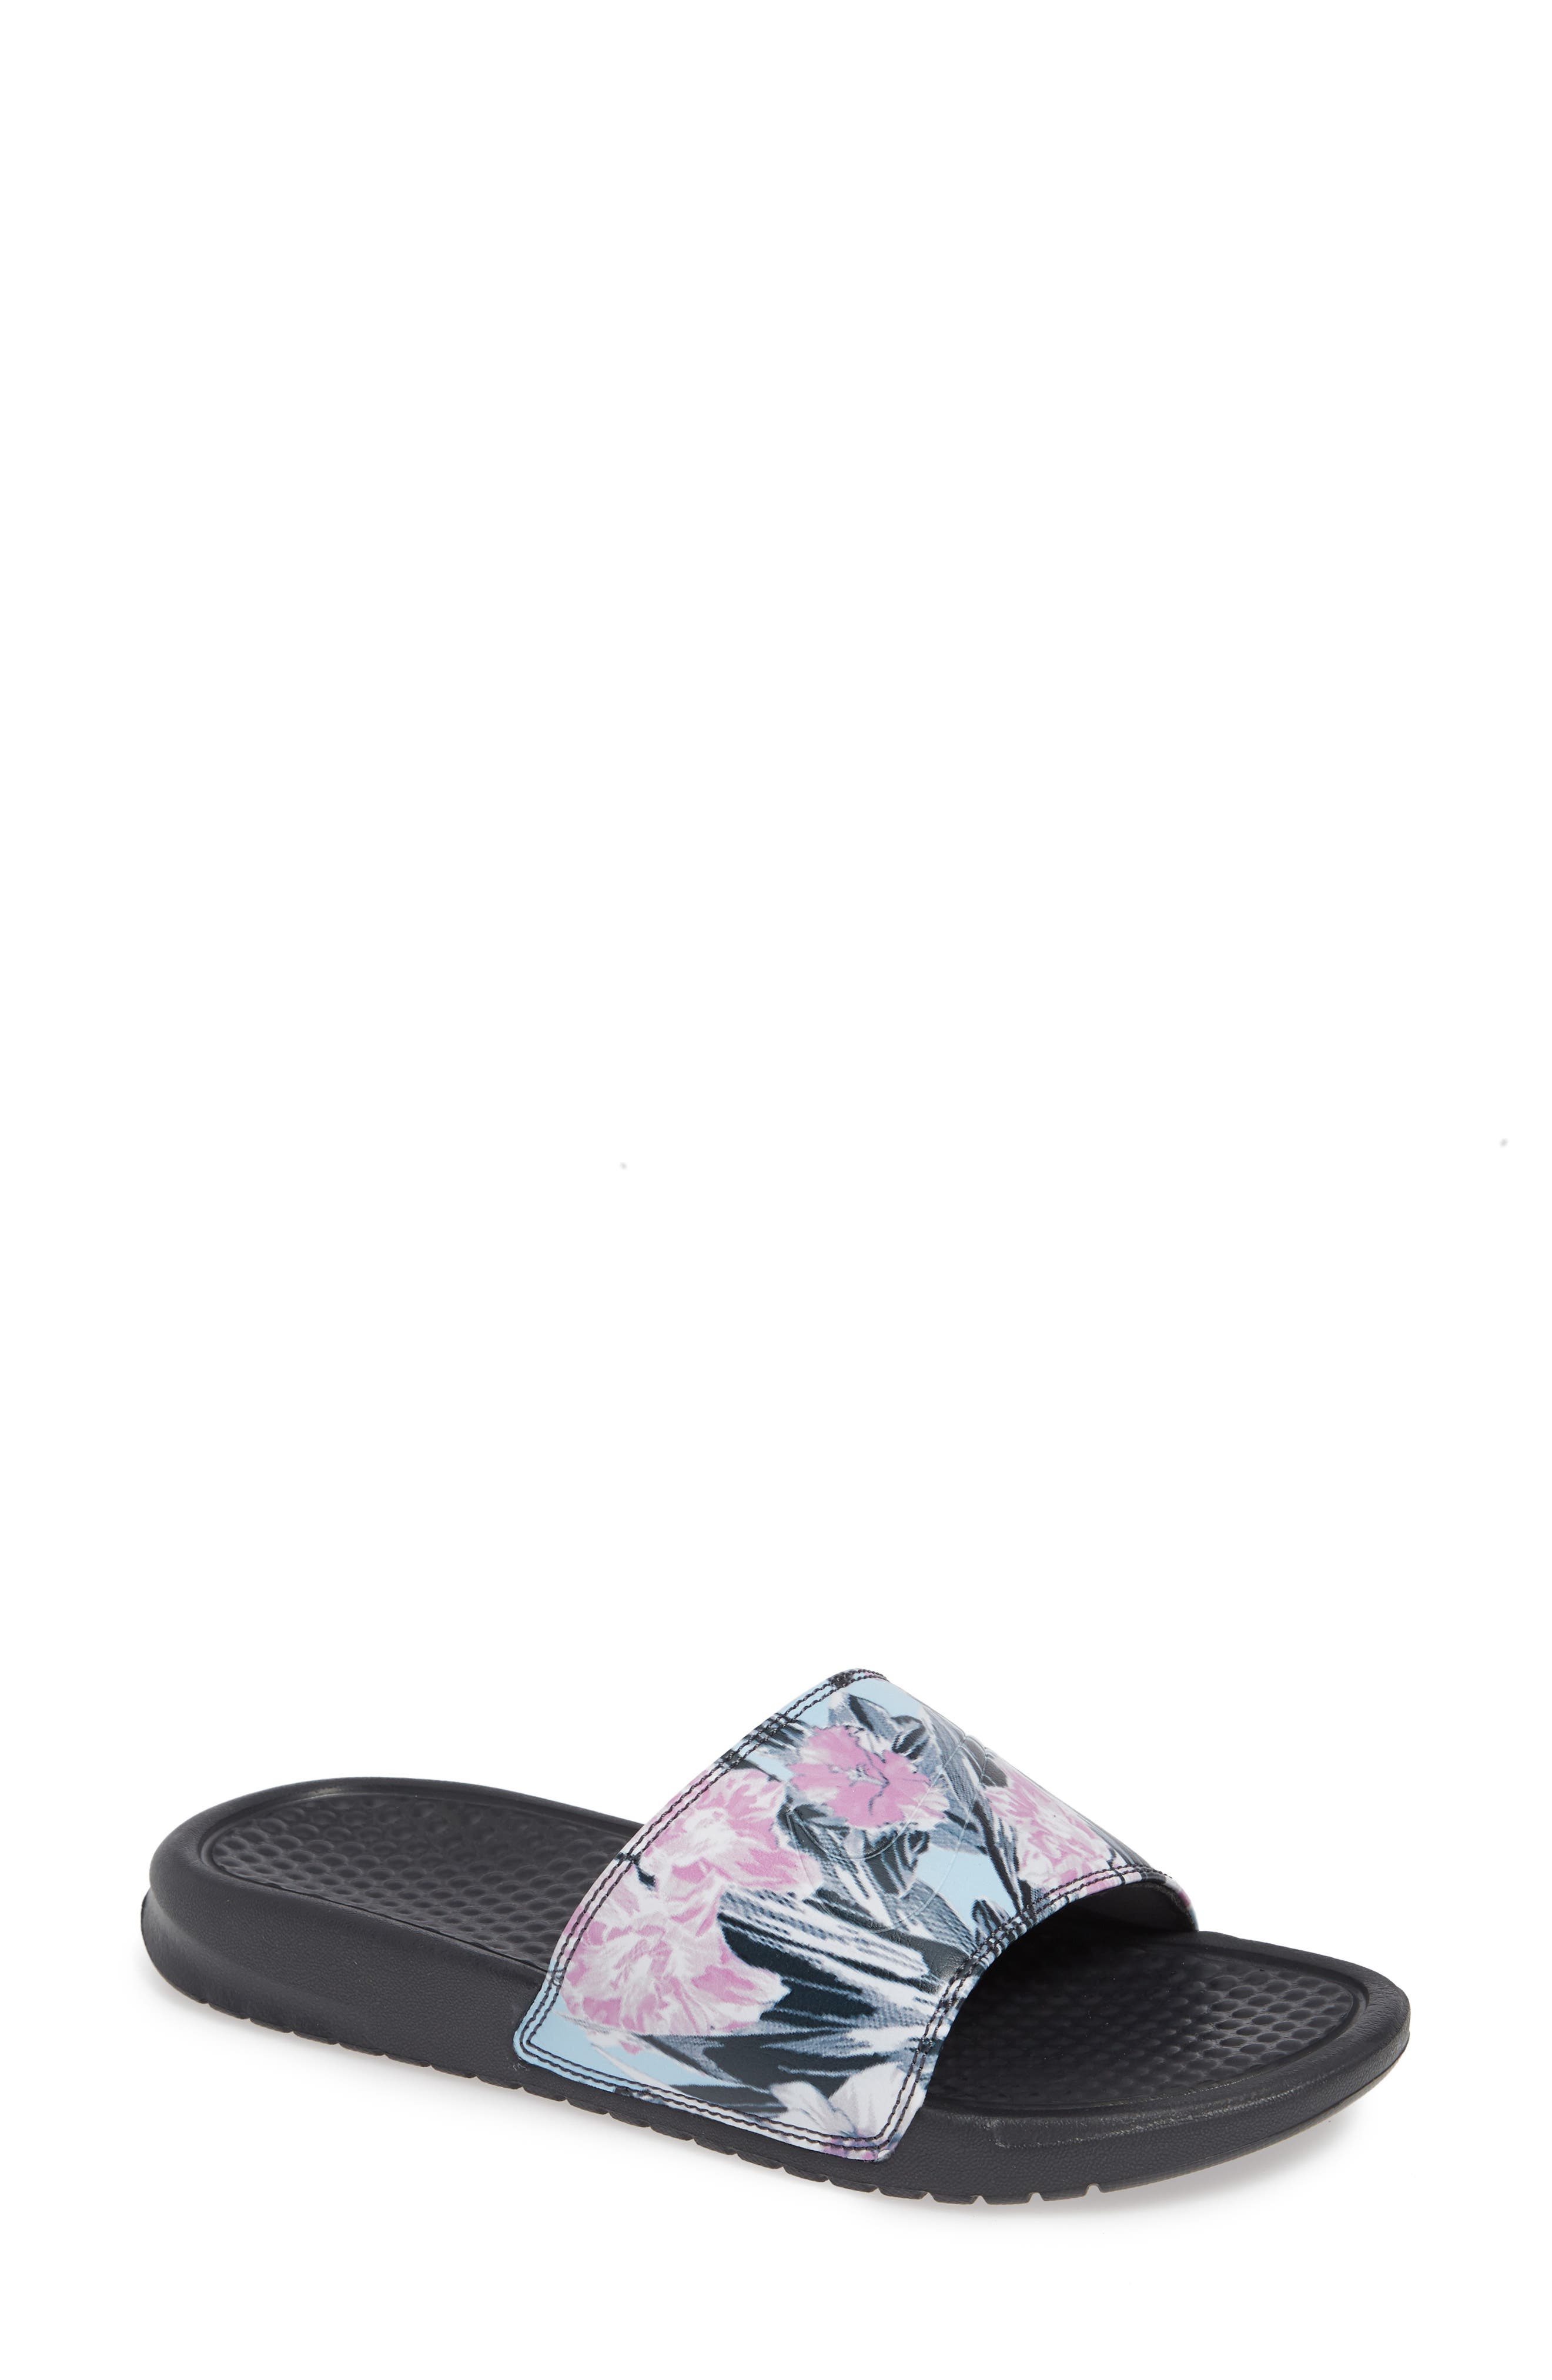 774e8059829e1d Women s Pool Slide Sandals